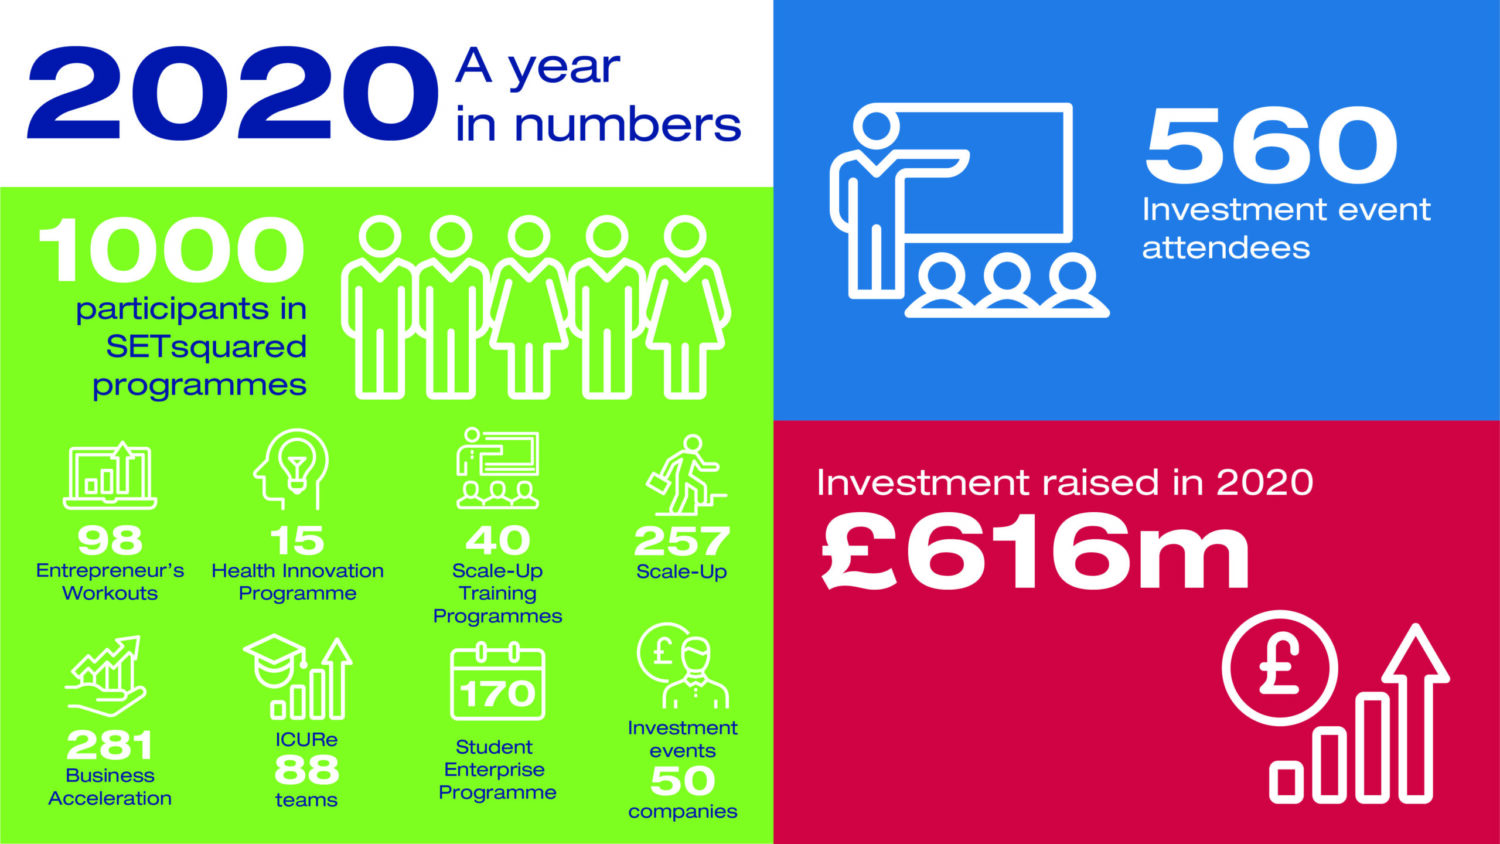 SETsquared member companies raise record £616m investment despite the global pandemic